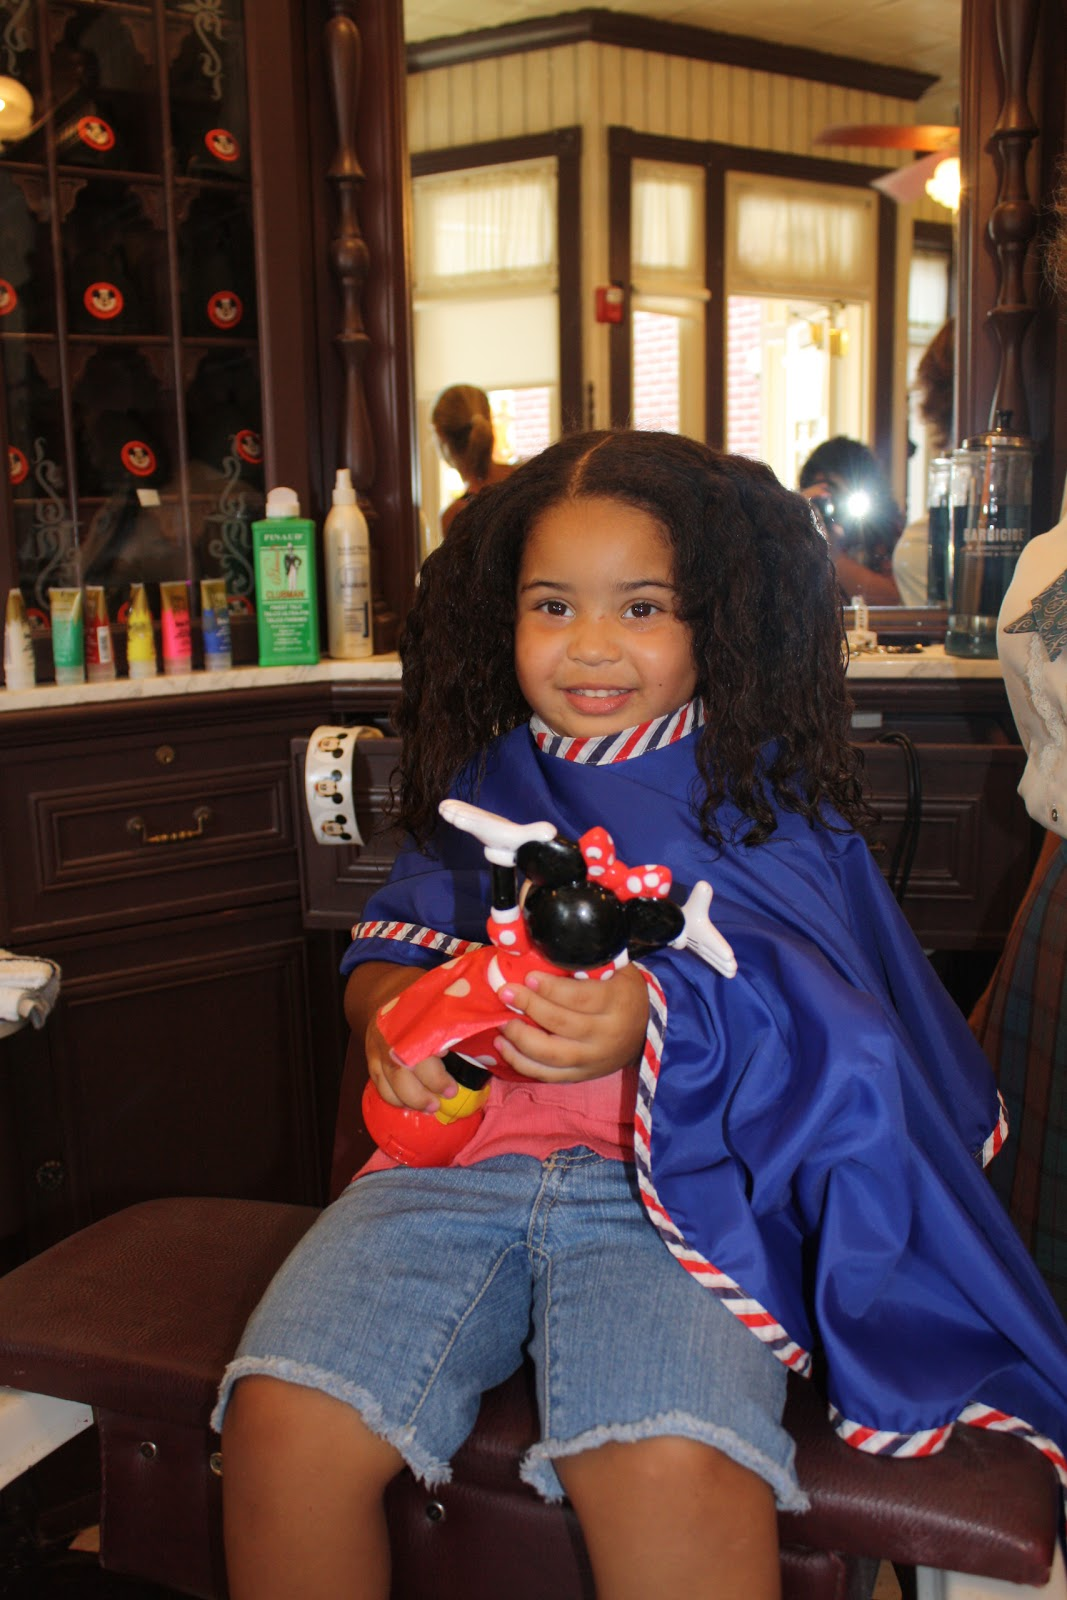 Mommyhood With No Blueprint As First Haircut Done At Disney World